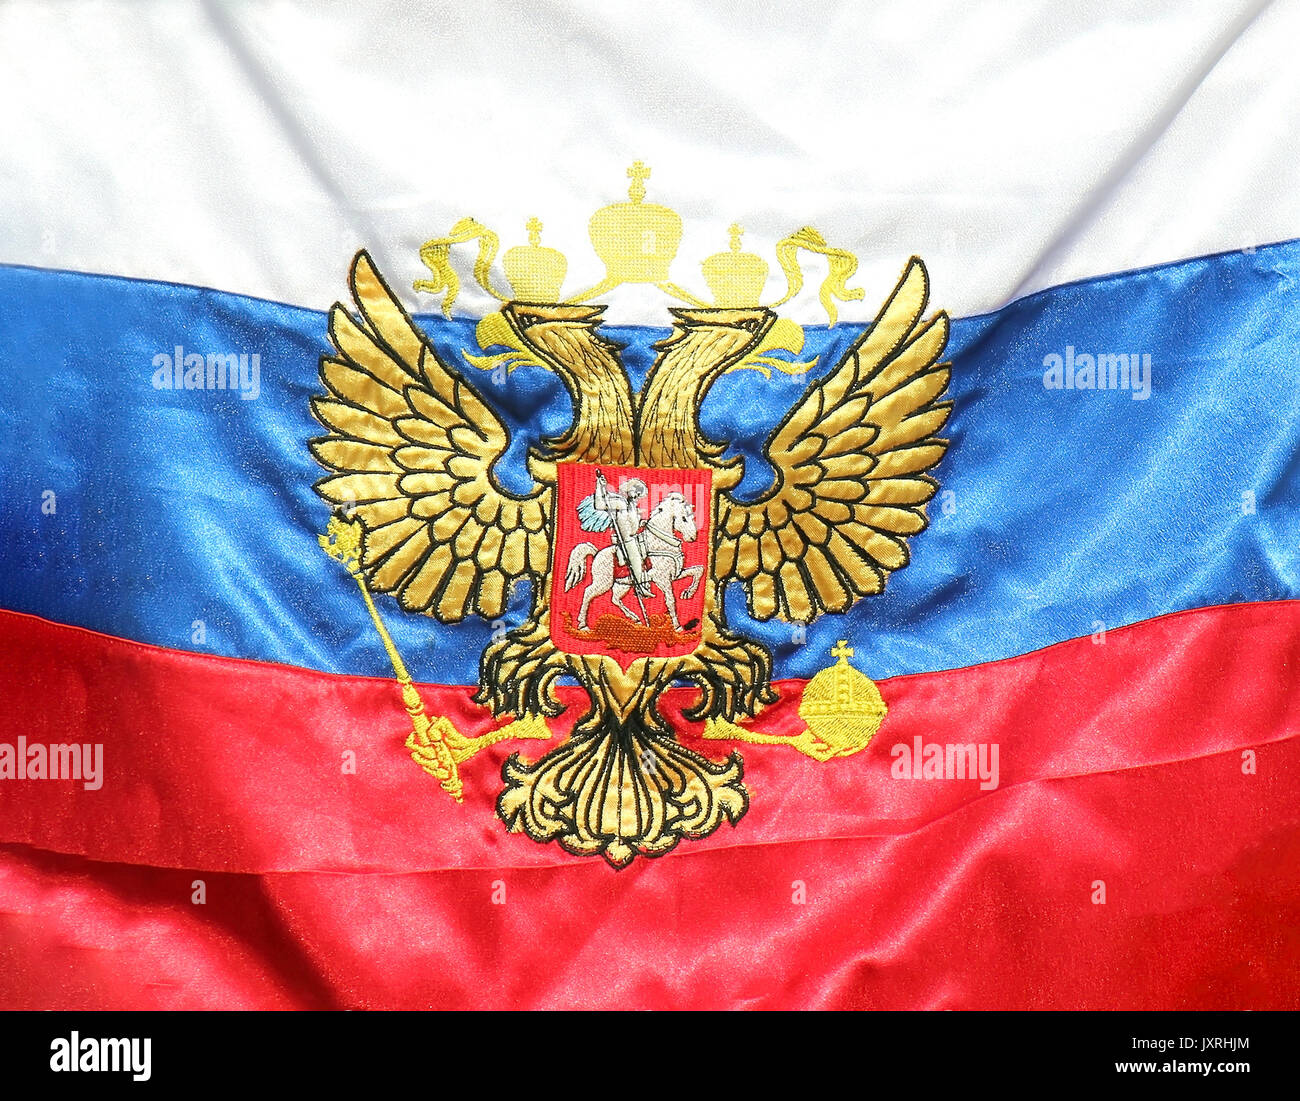 Old Russian Federation flag back in the use today - Stock Image